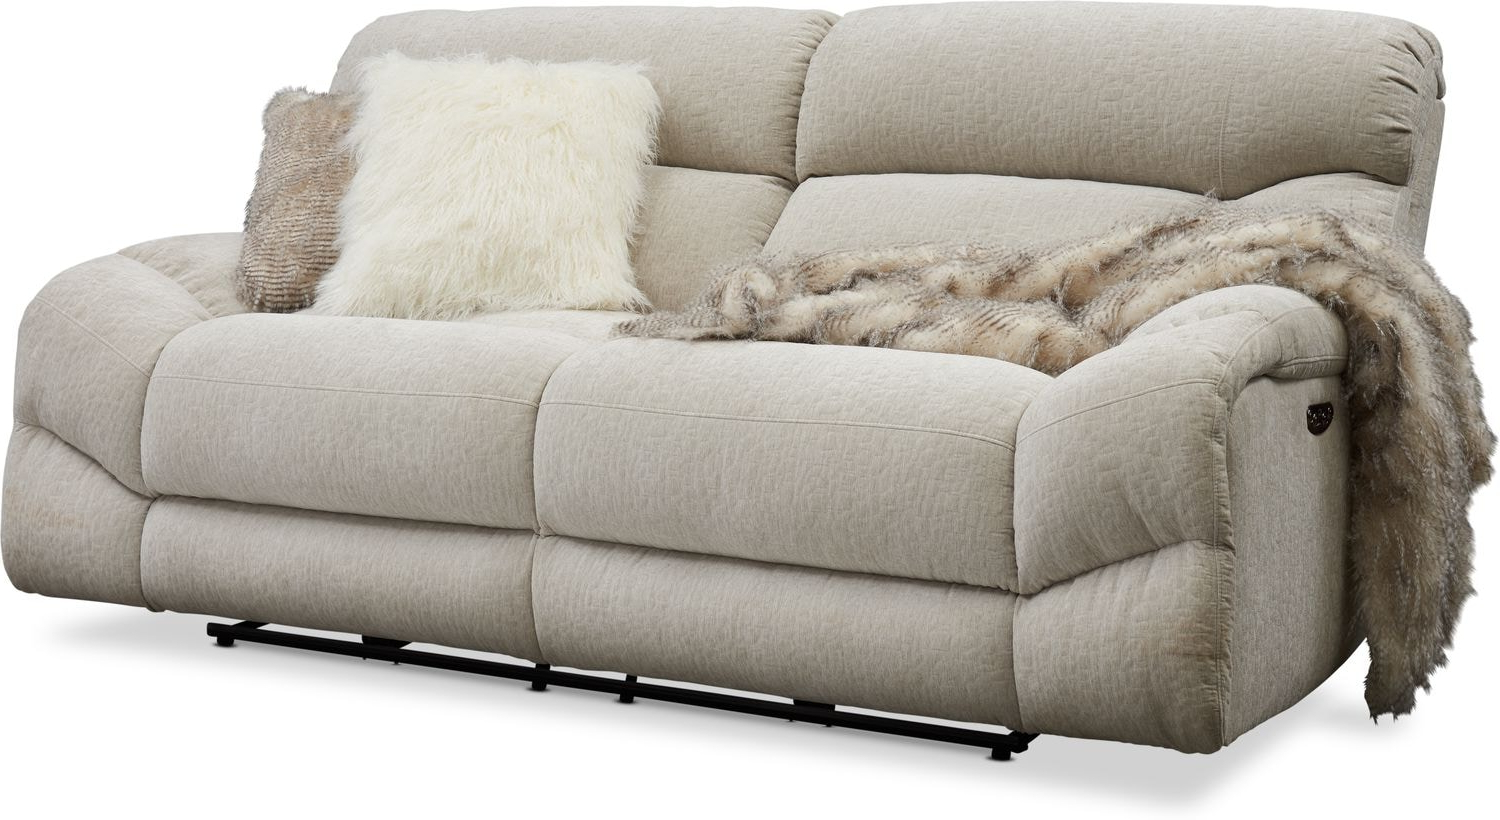 Trailblazer Gray Leather Power Reclining Sofas In Well Liked Sofa Power Recliner – Latest Sofa Pictures (View 8 of 20)